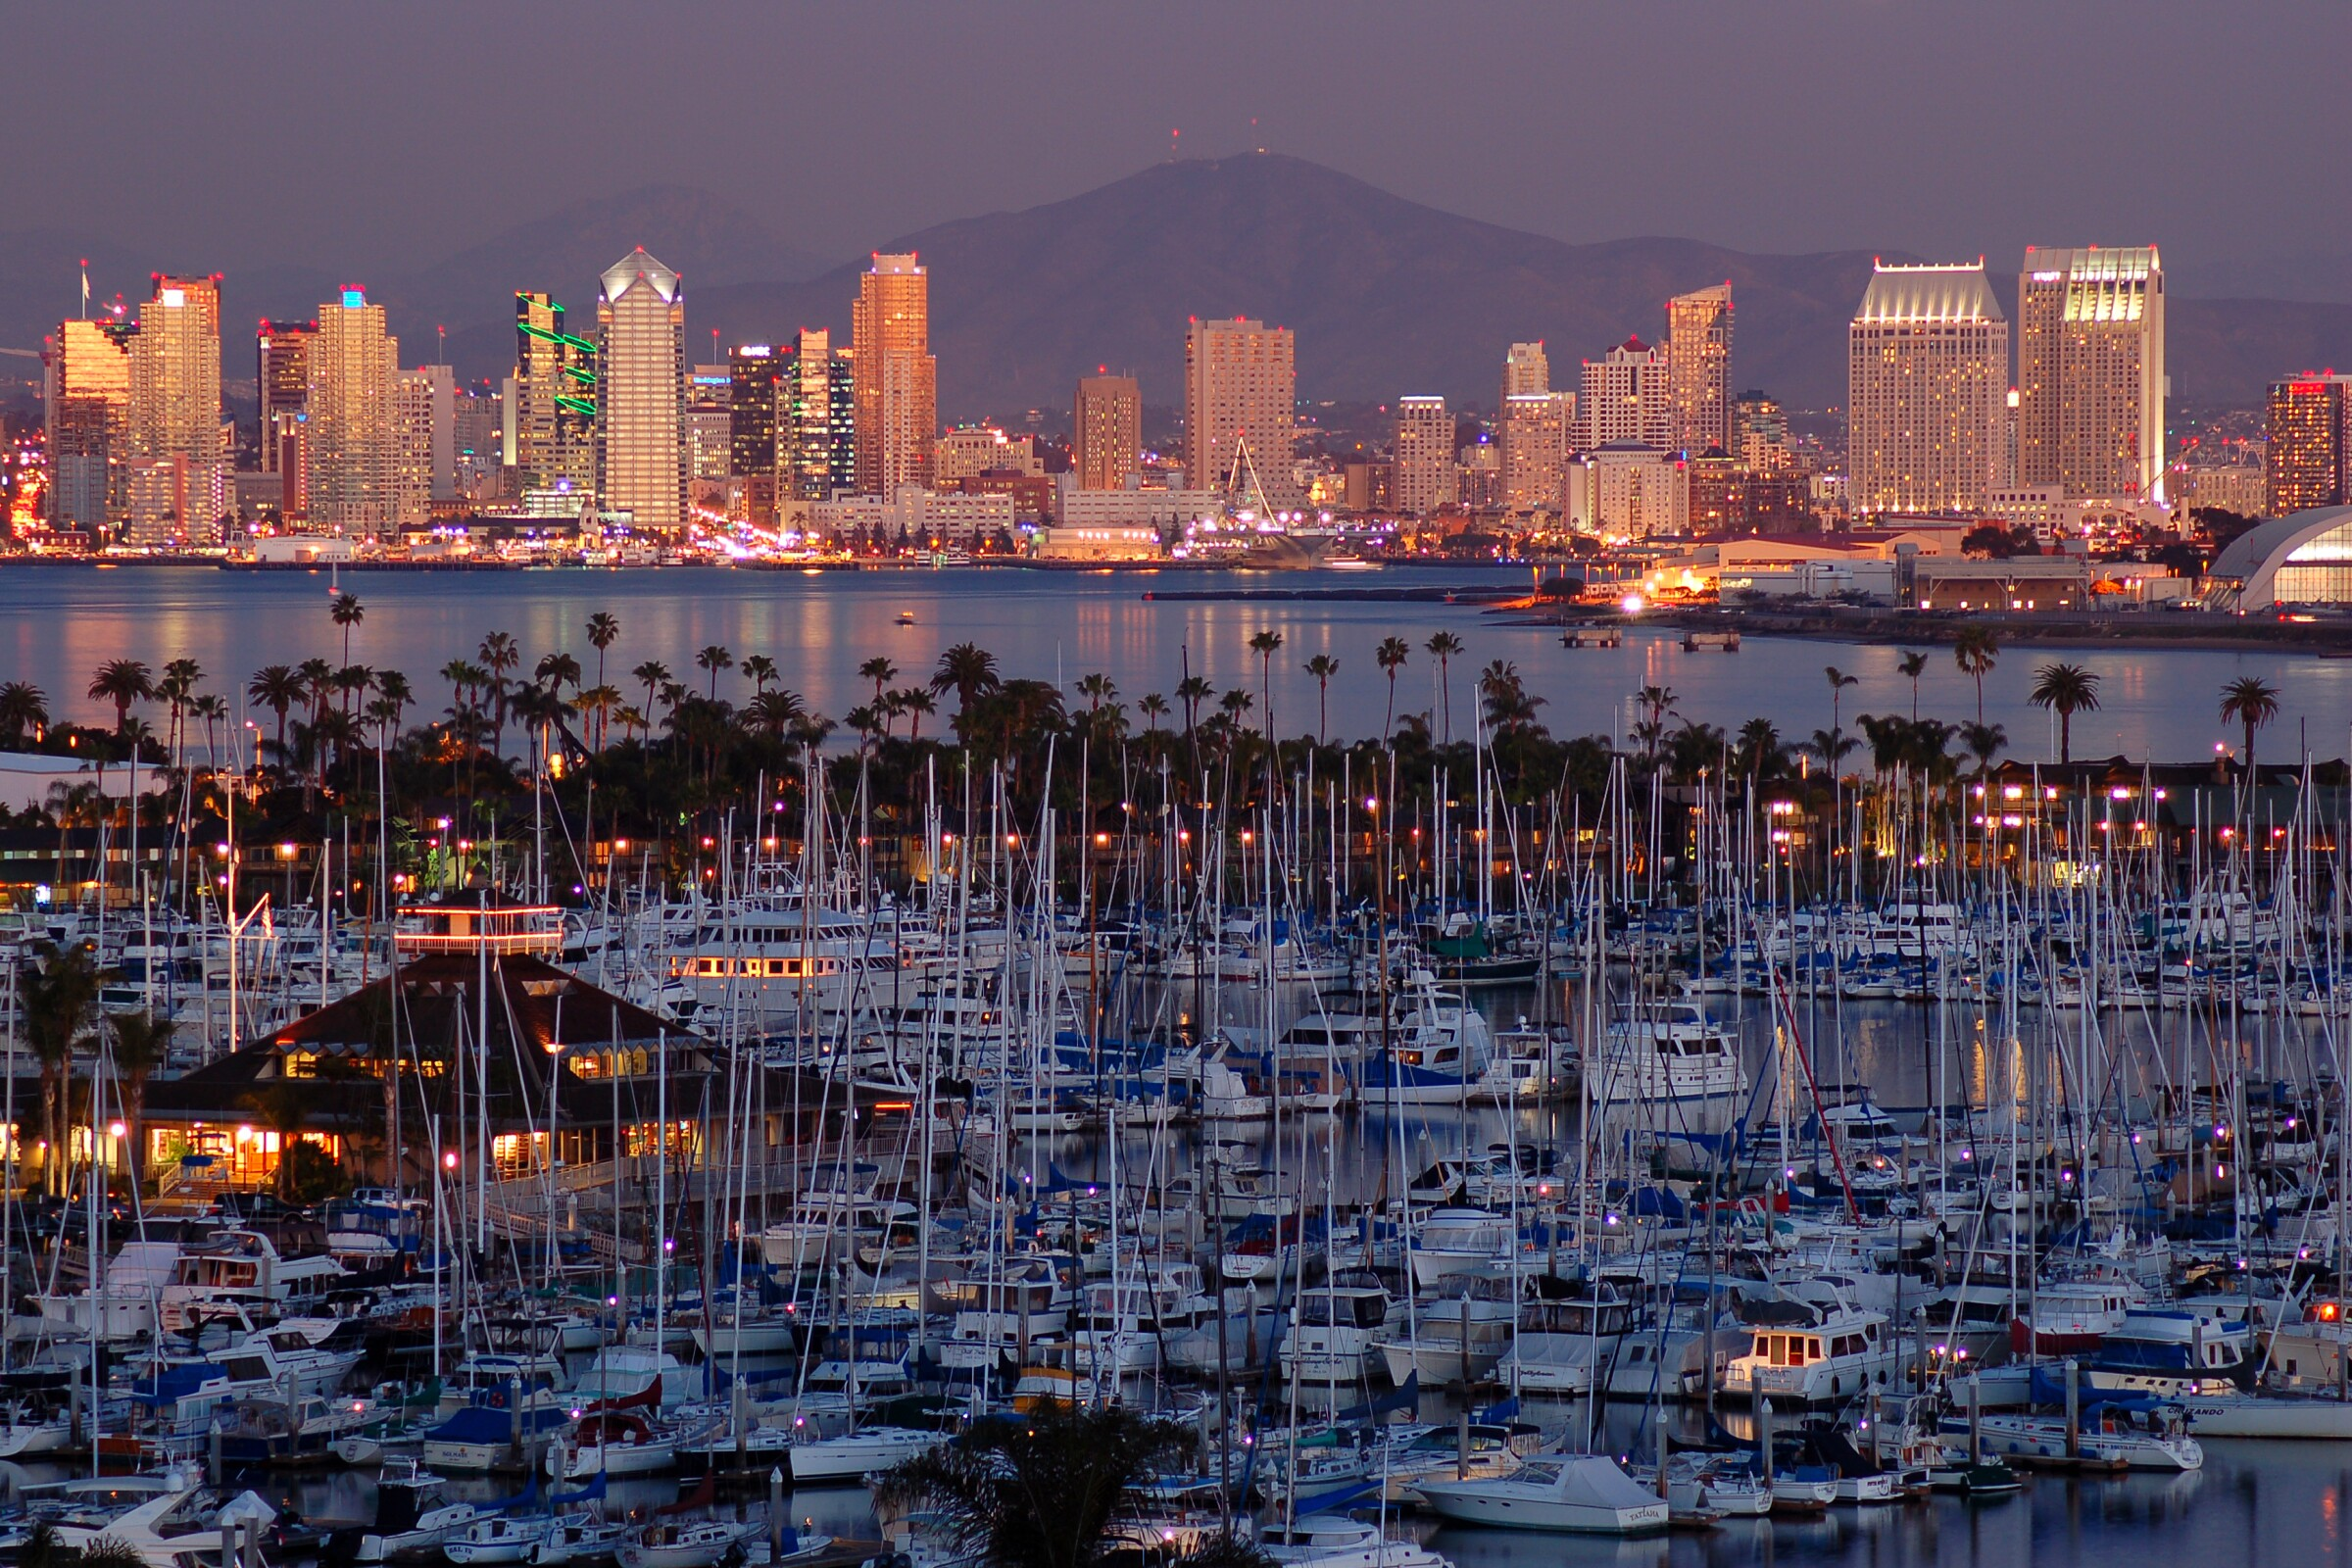 The sunset is reflected in the skyline and the calm marina of San Diego, California.